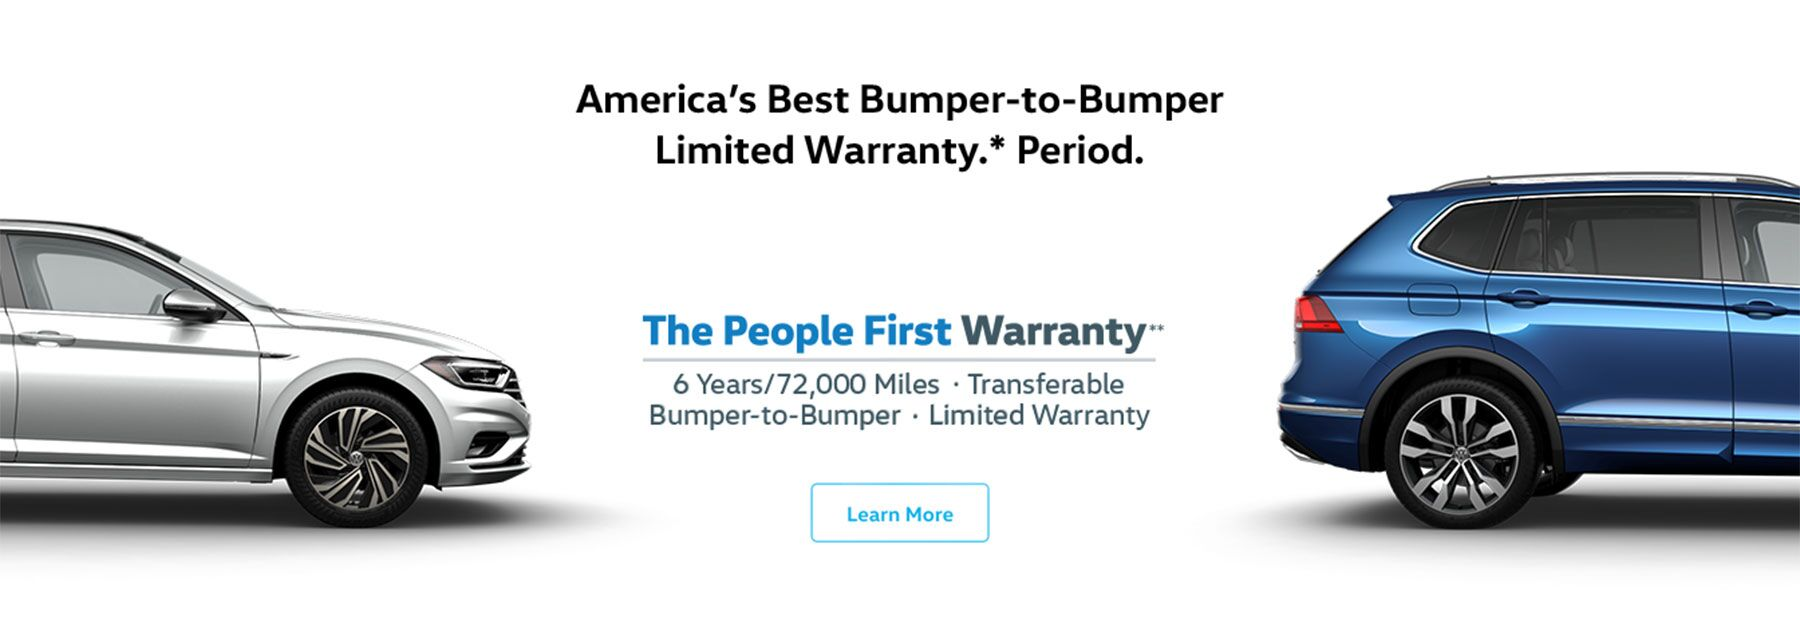 America's best bumper-to-bumper limited warranty. Period.